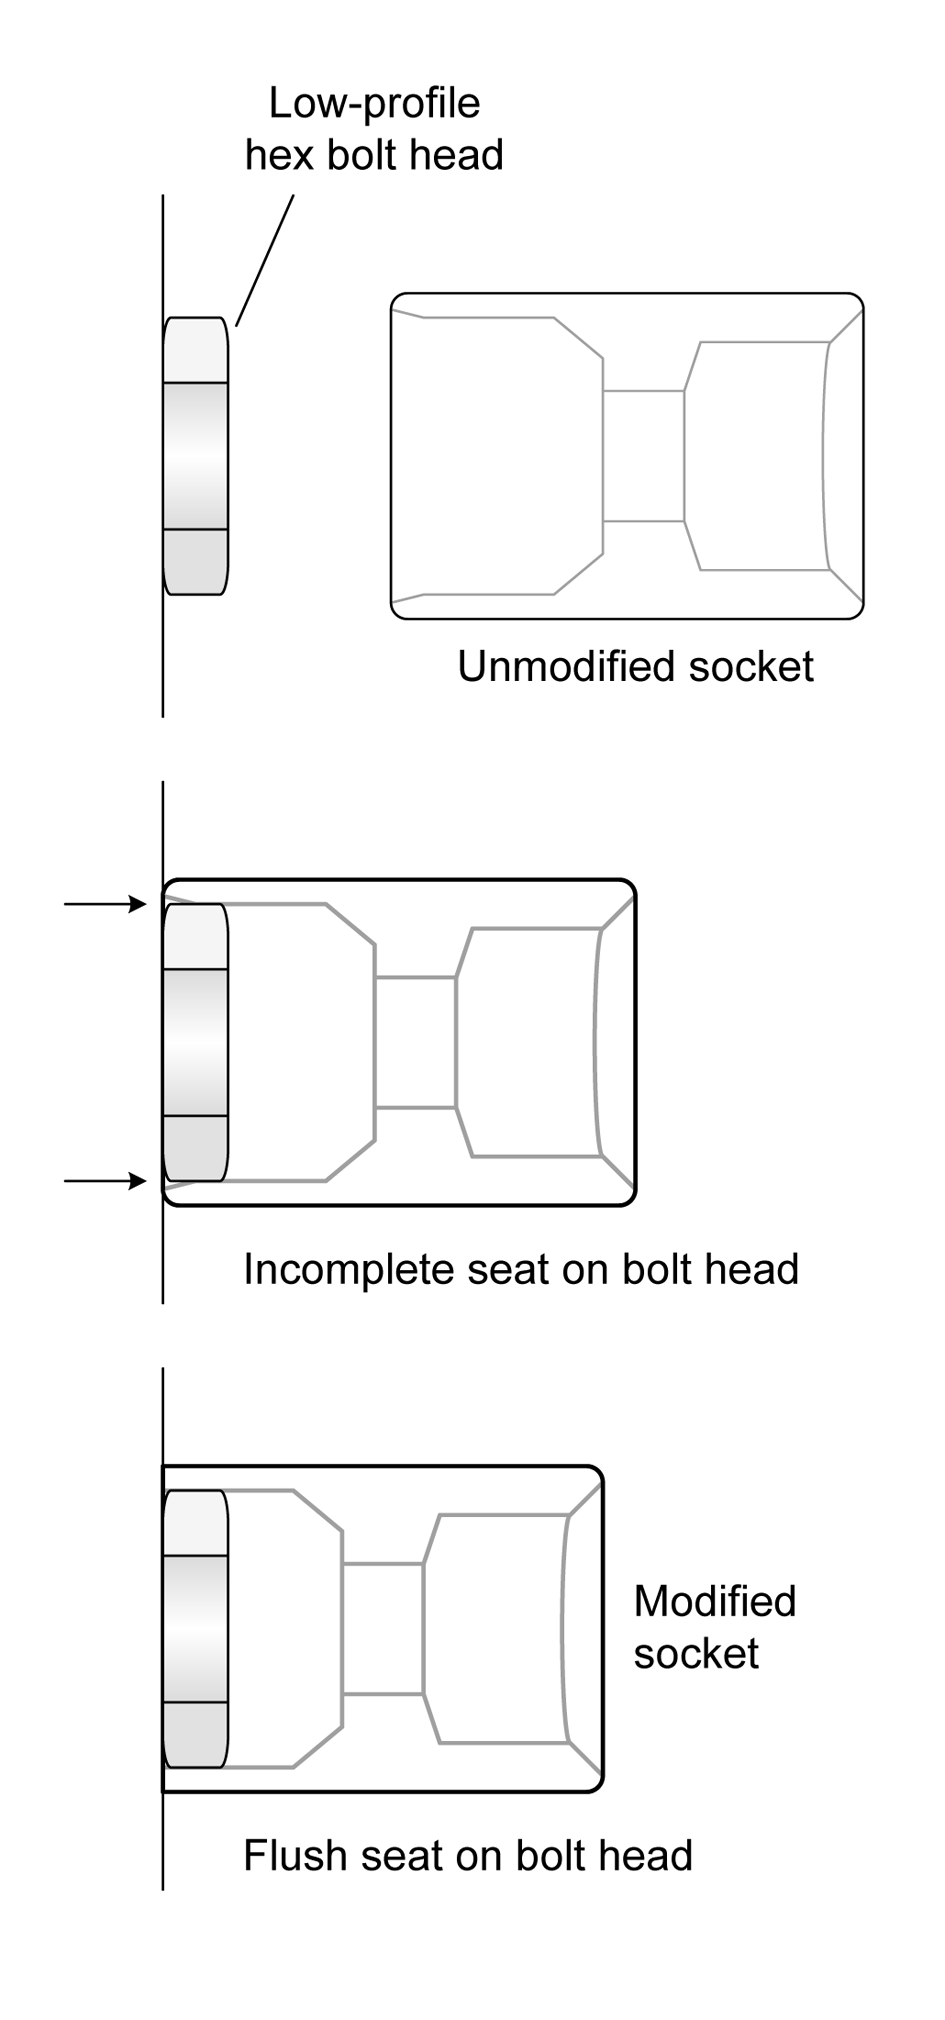 4 Tool Techniques Practical Electronics Components And To Make Over Head Tank Water Level Indicator Cum Controller Circuit Socket Seating On A Small Hex Fastener